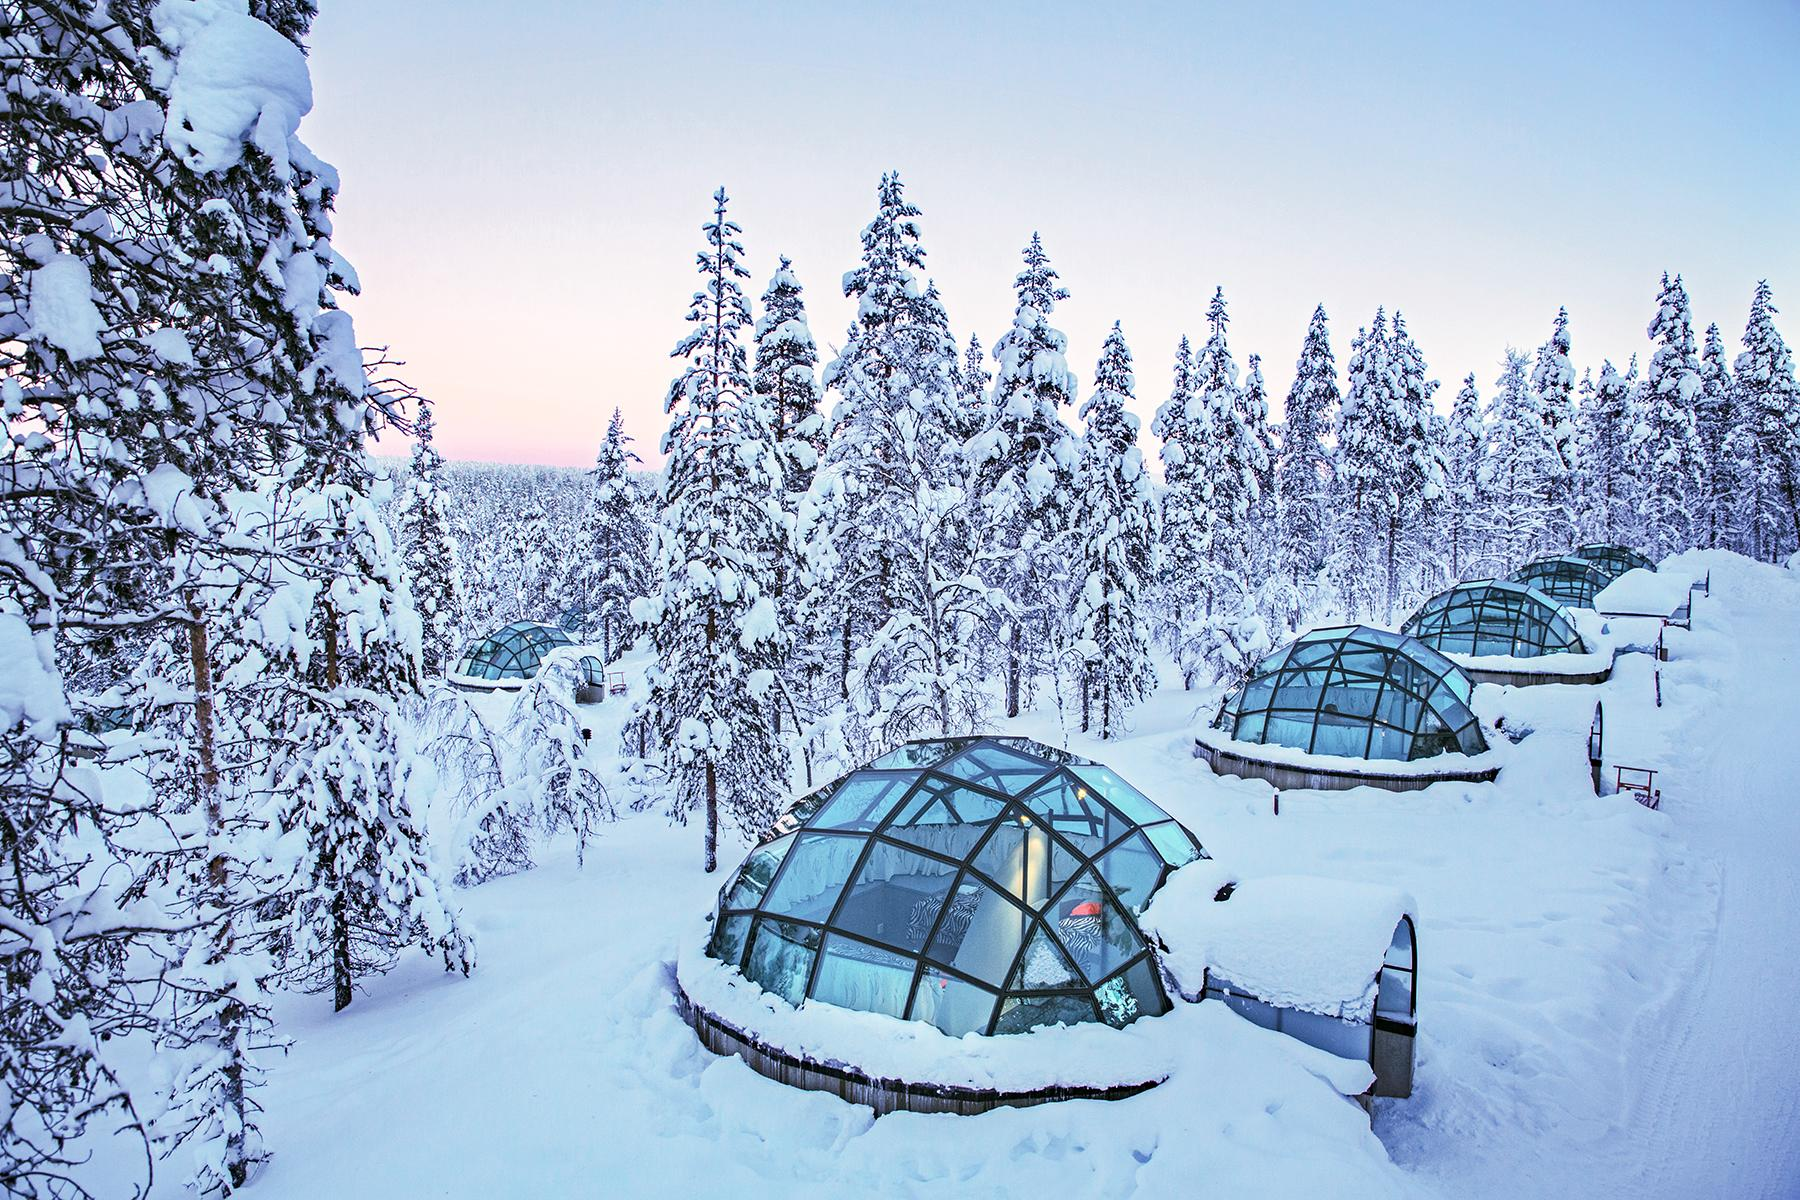 04_SleepinginaGlassIgloo__KakslauttenResort_Kakslauttanen glass igloo